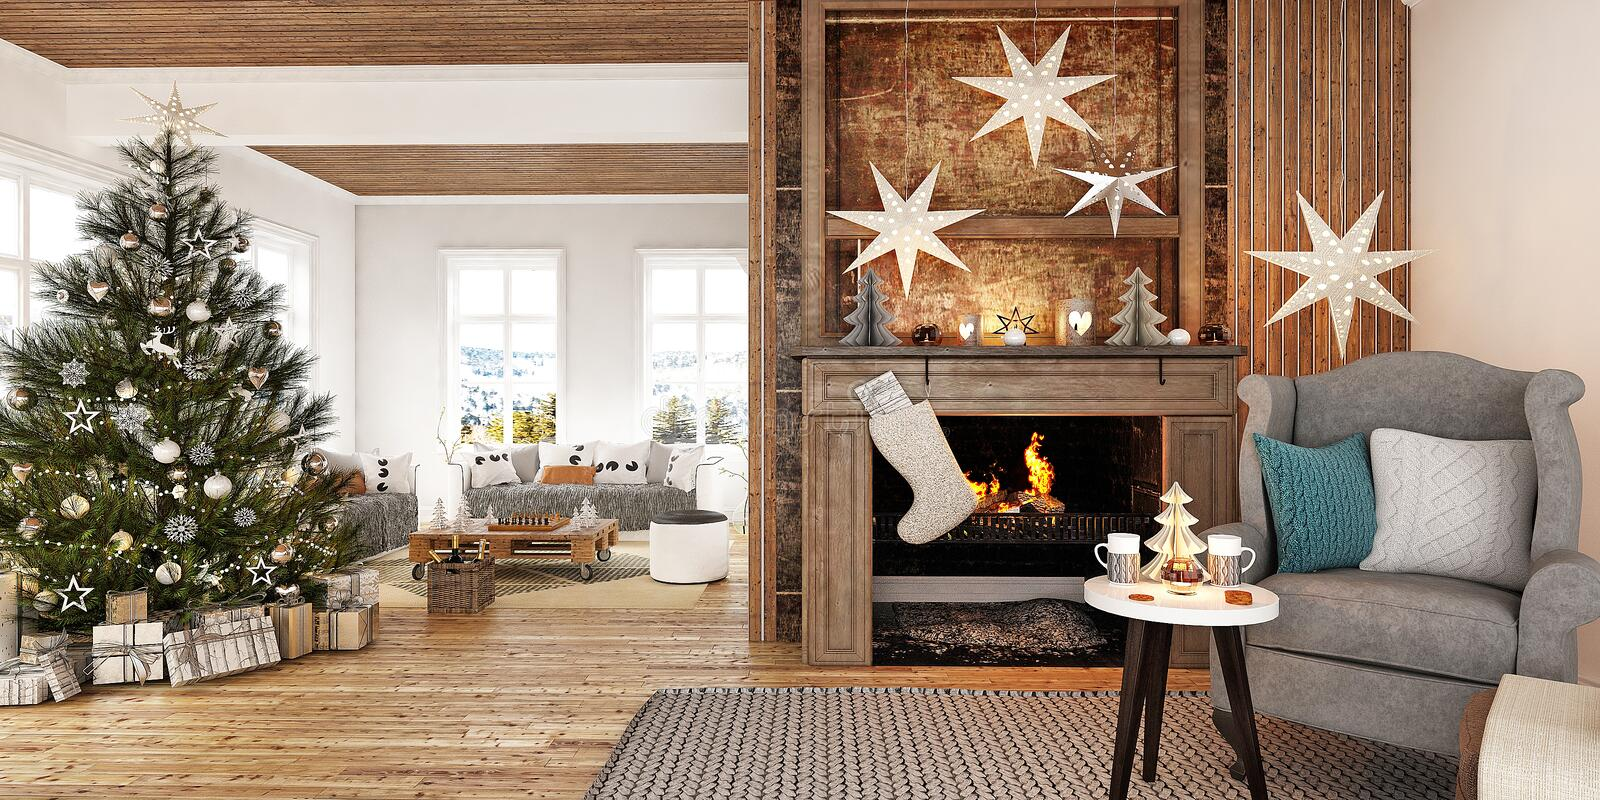 New year tree in scandinavian style interior with christmas decoration and fireplace stock photos